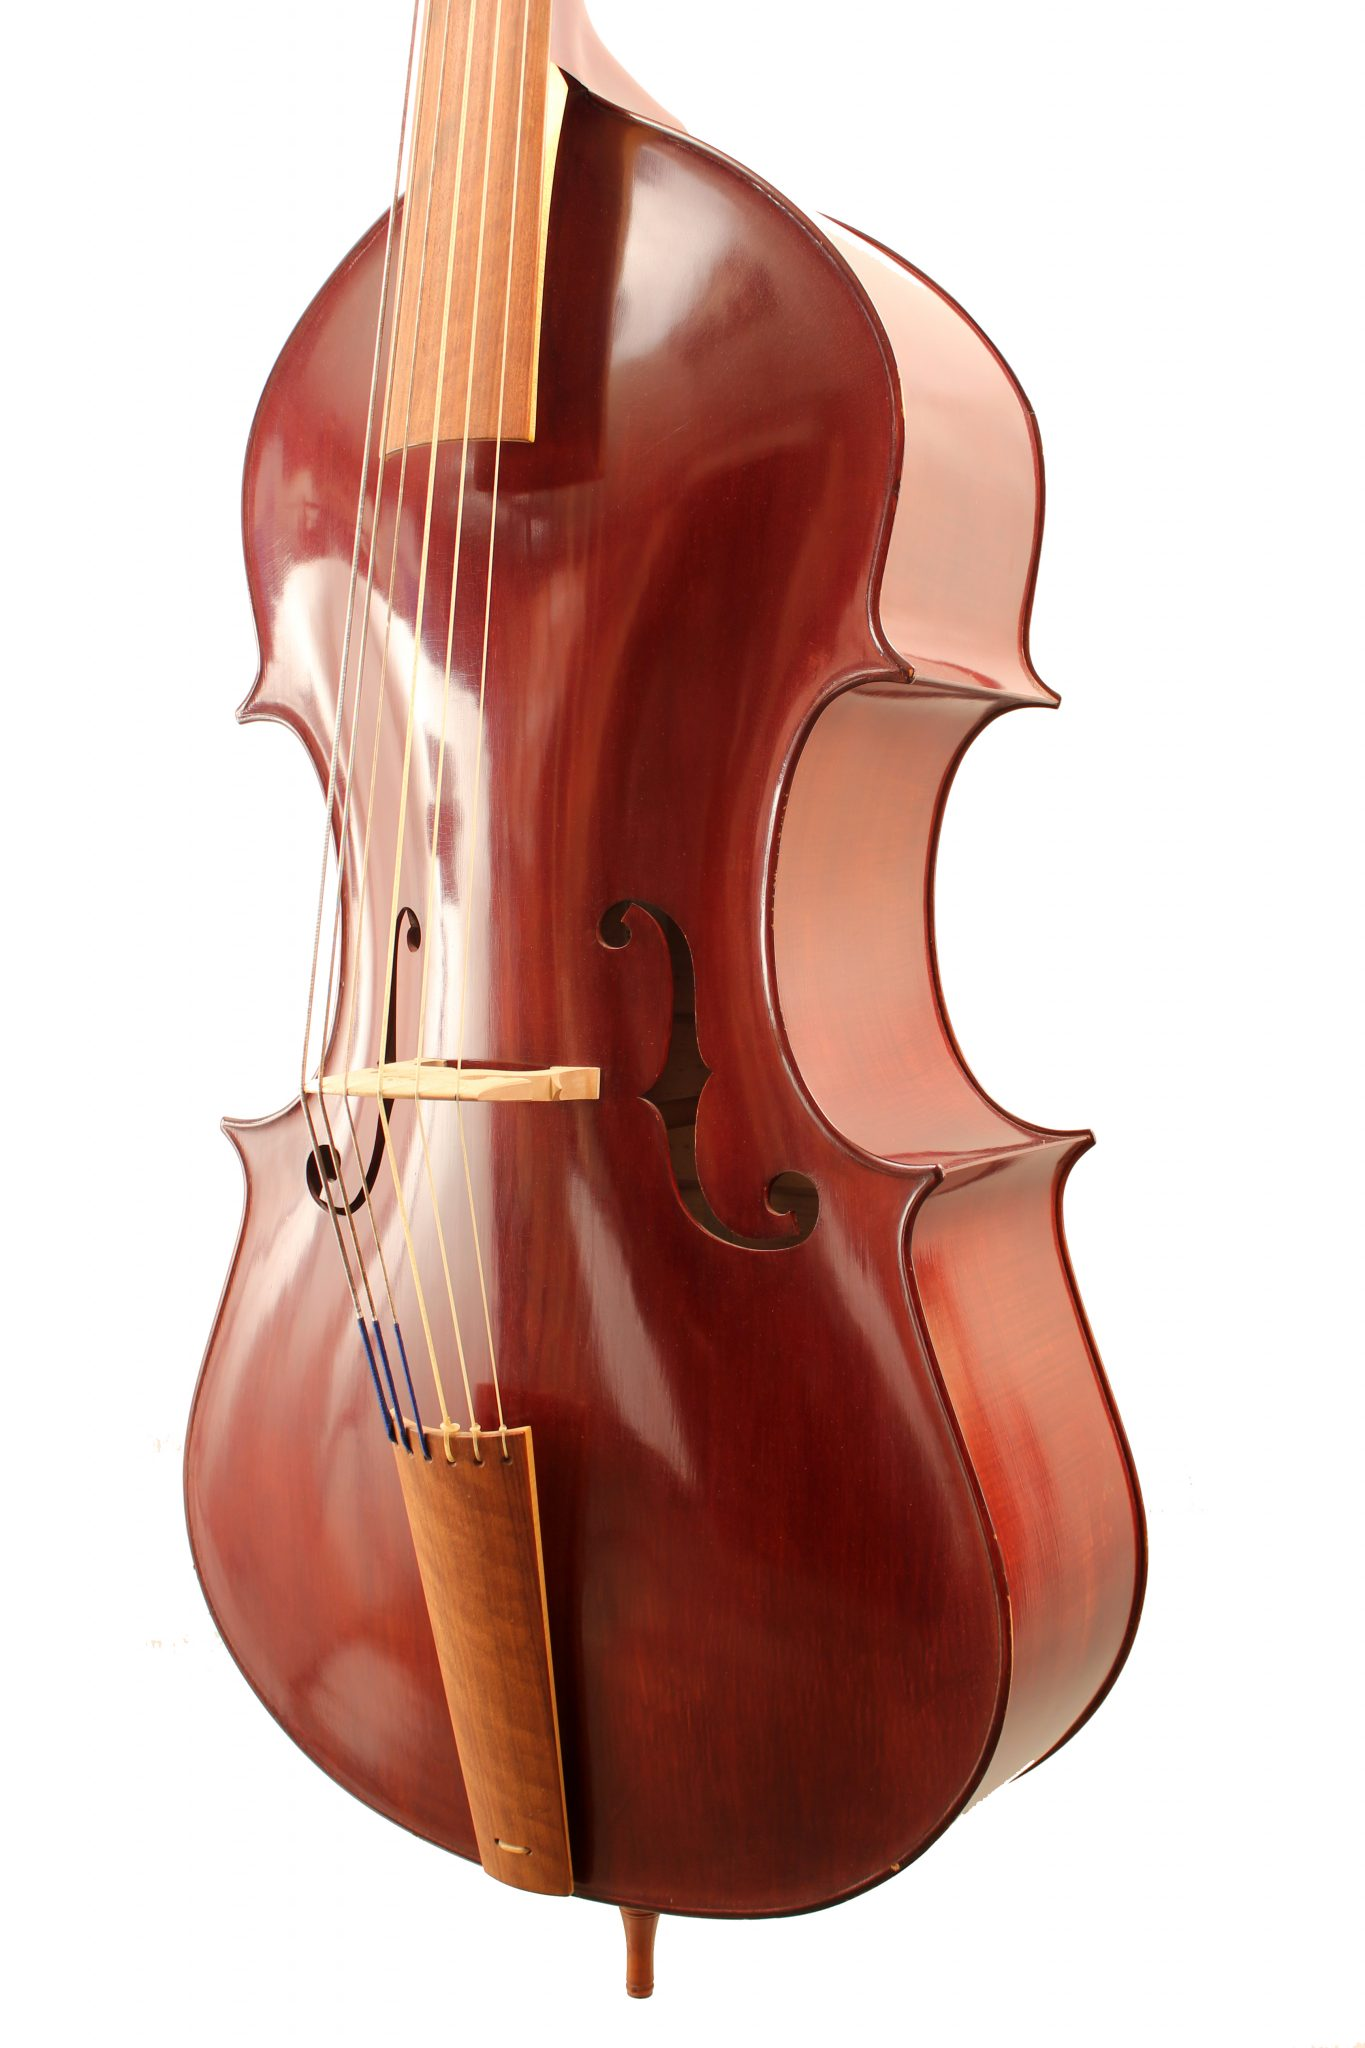 violone by Gary Bridgewood for sale at Bridgewood and Neitzert London